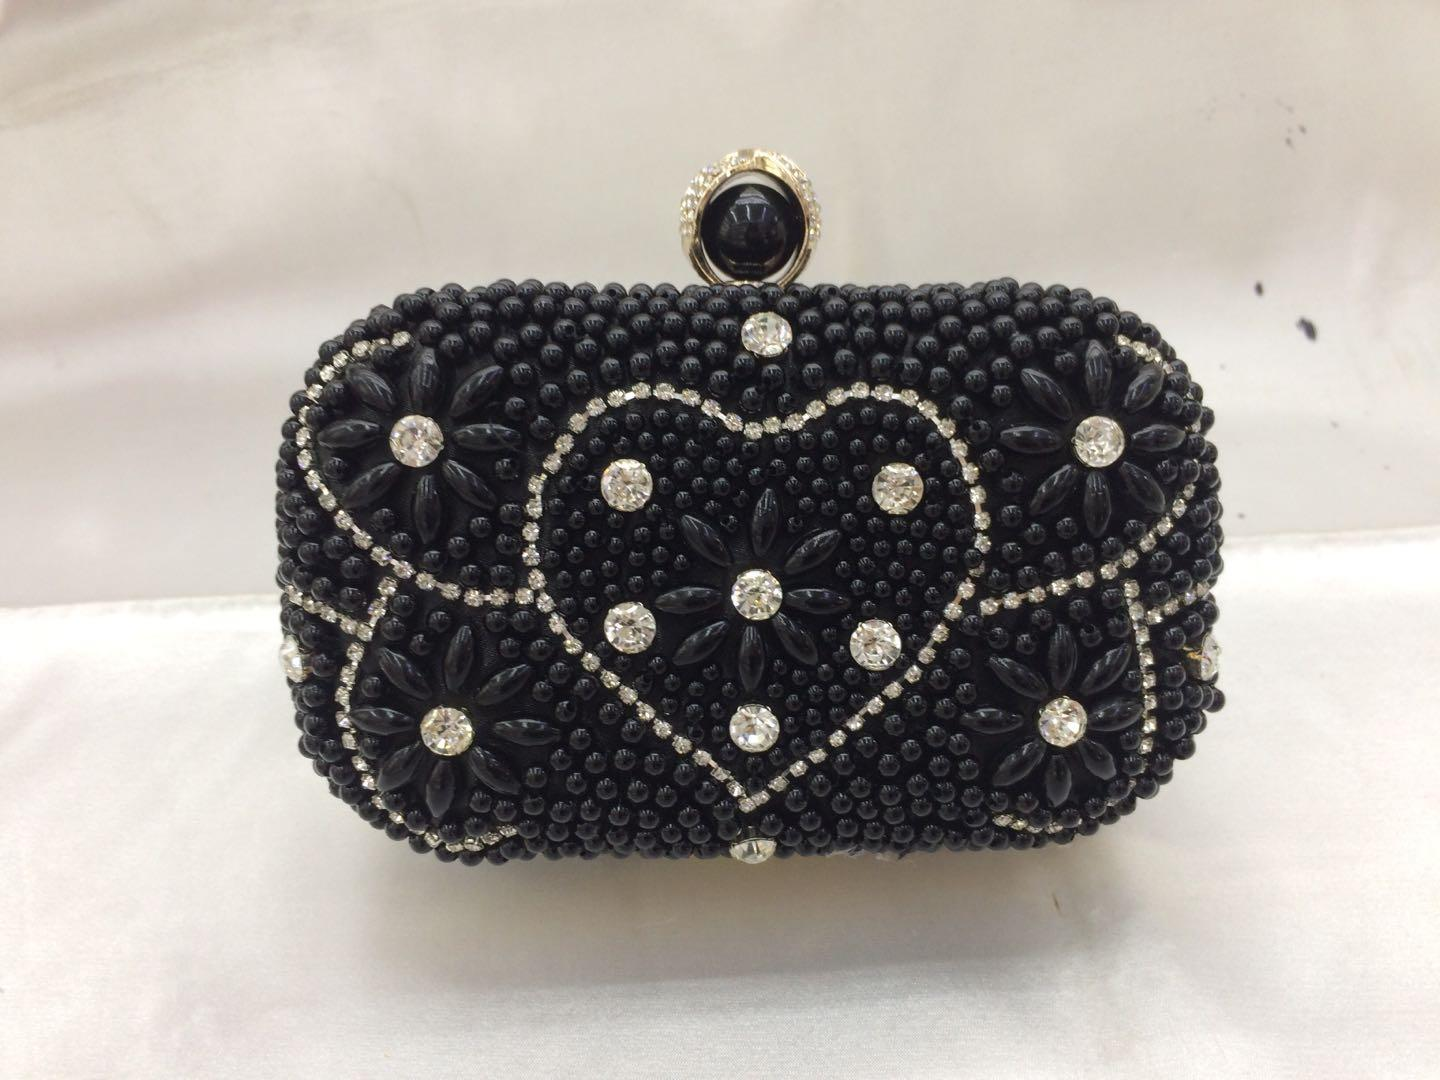 new women bags evening luxury handbags Gift designer Heart-shaped Diamond and pearl decoration tote shoulder bridal wedding wallet1564829299